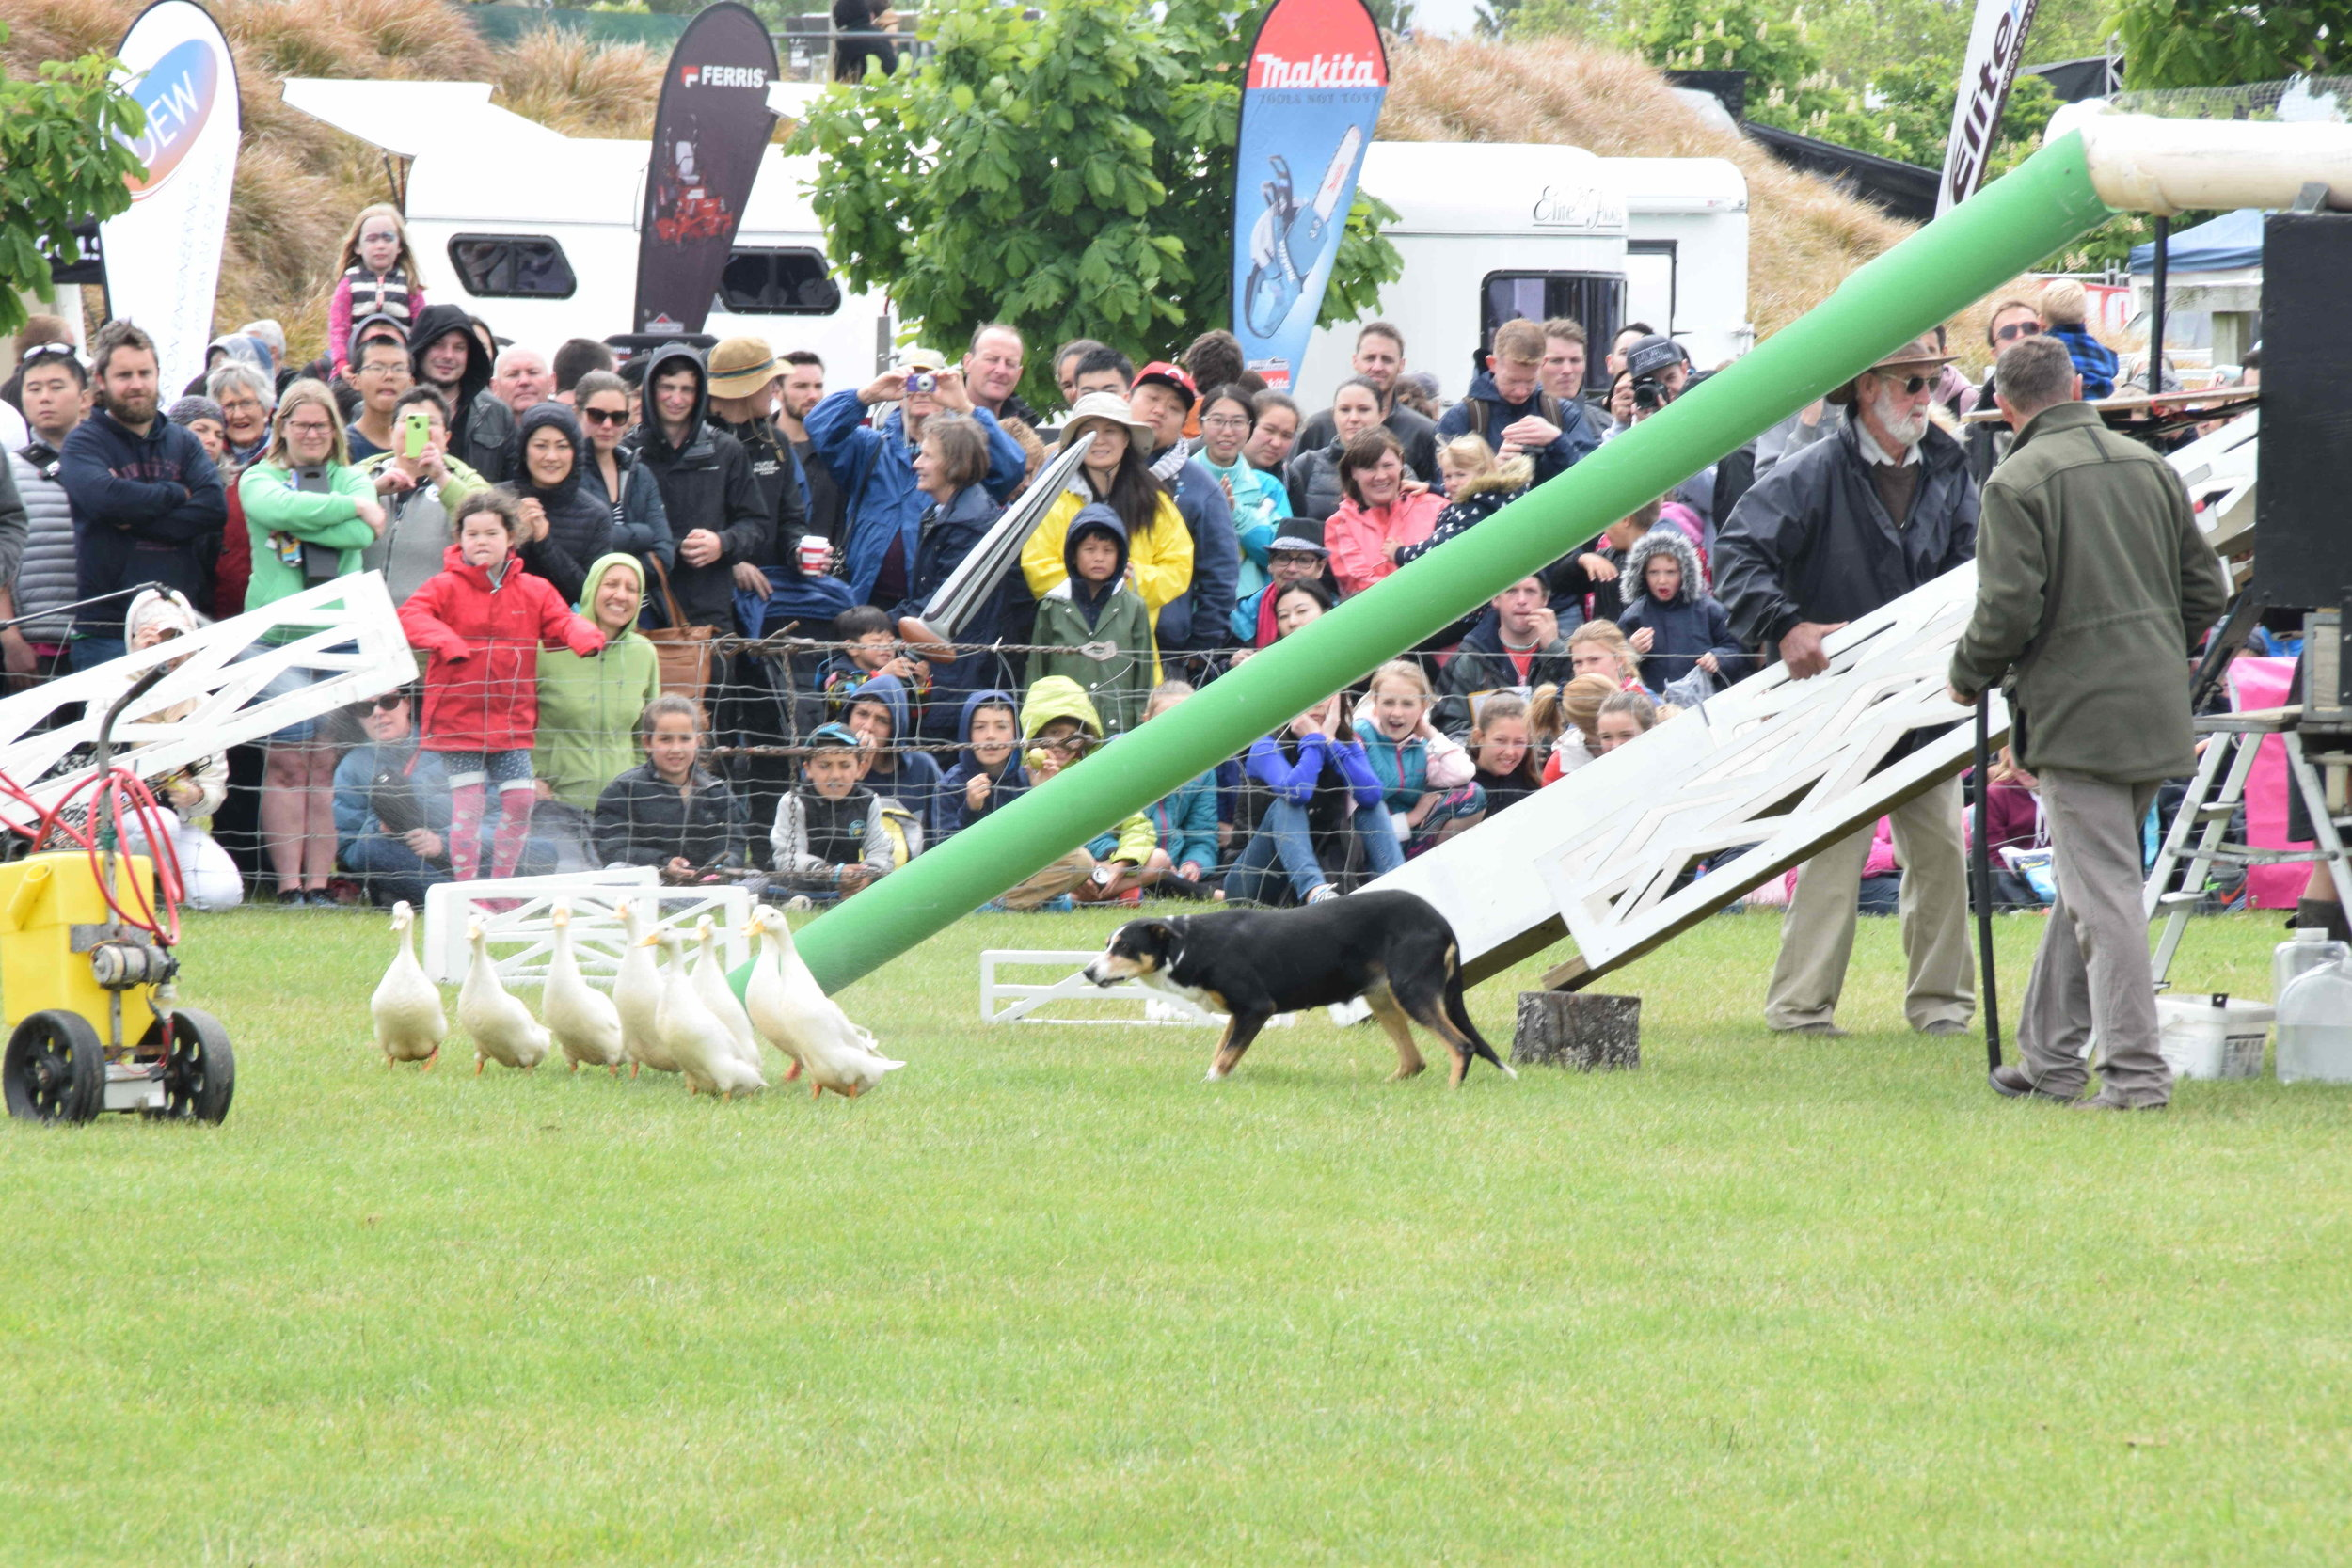 Duck herding (above); showcasing farm dogs, which are purpose-bred dogs that are trained to round up stock and shift animals through gates, into pens and onto trucks